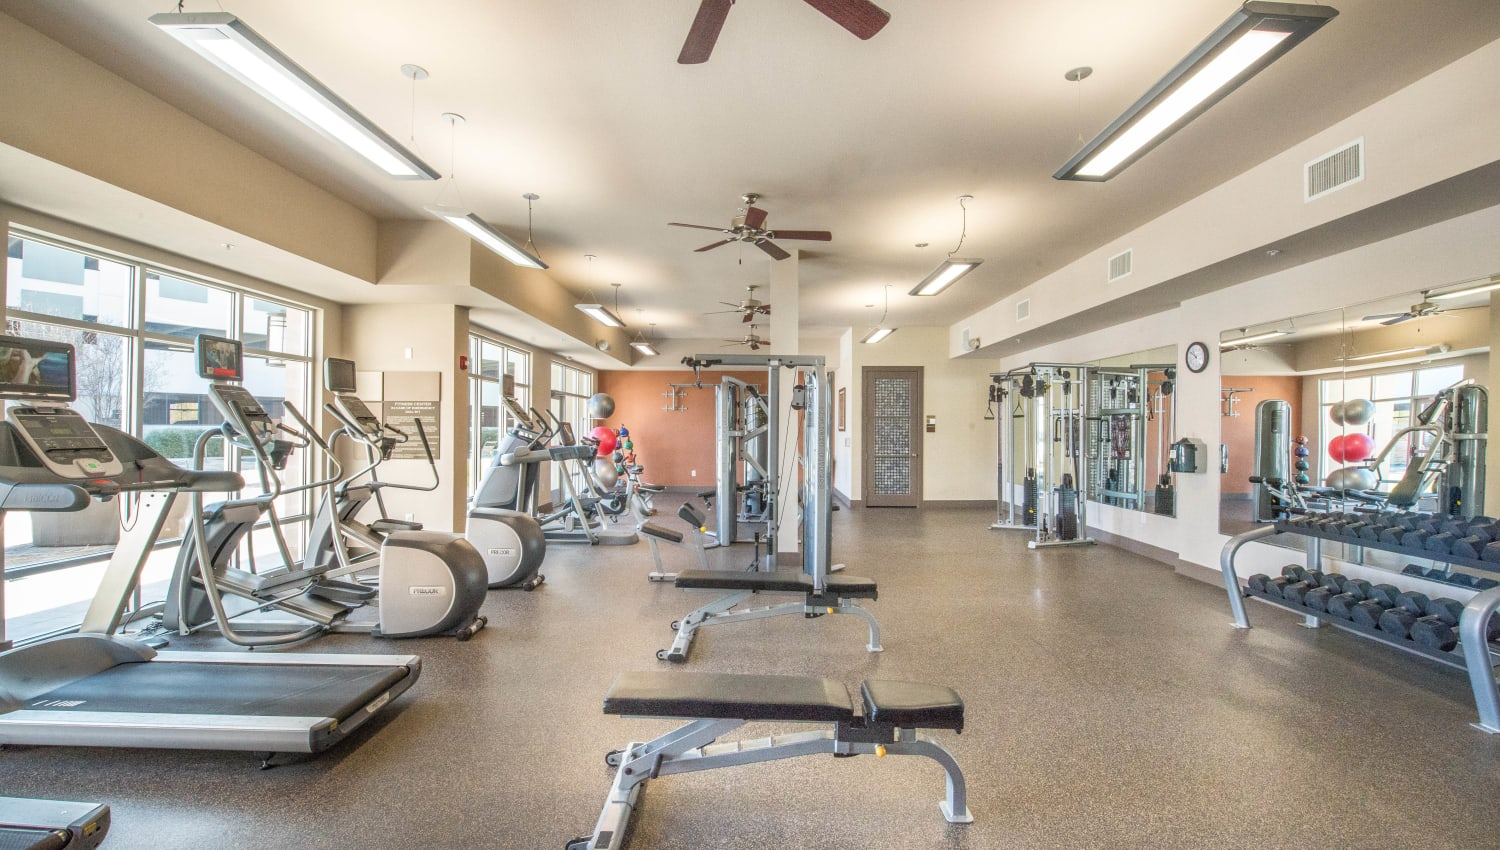 Cardio machines and free weights in the fitness center at Union At Carrollton Square in Carrollton, Texas